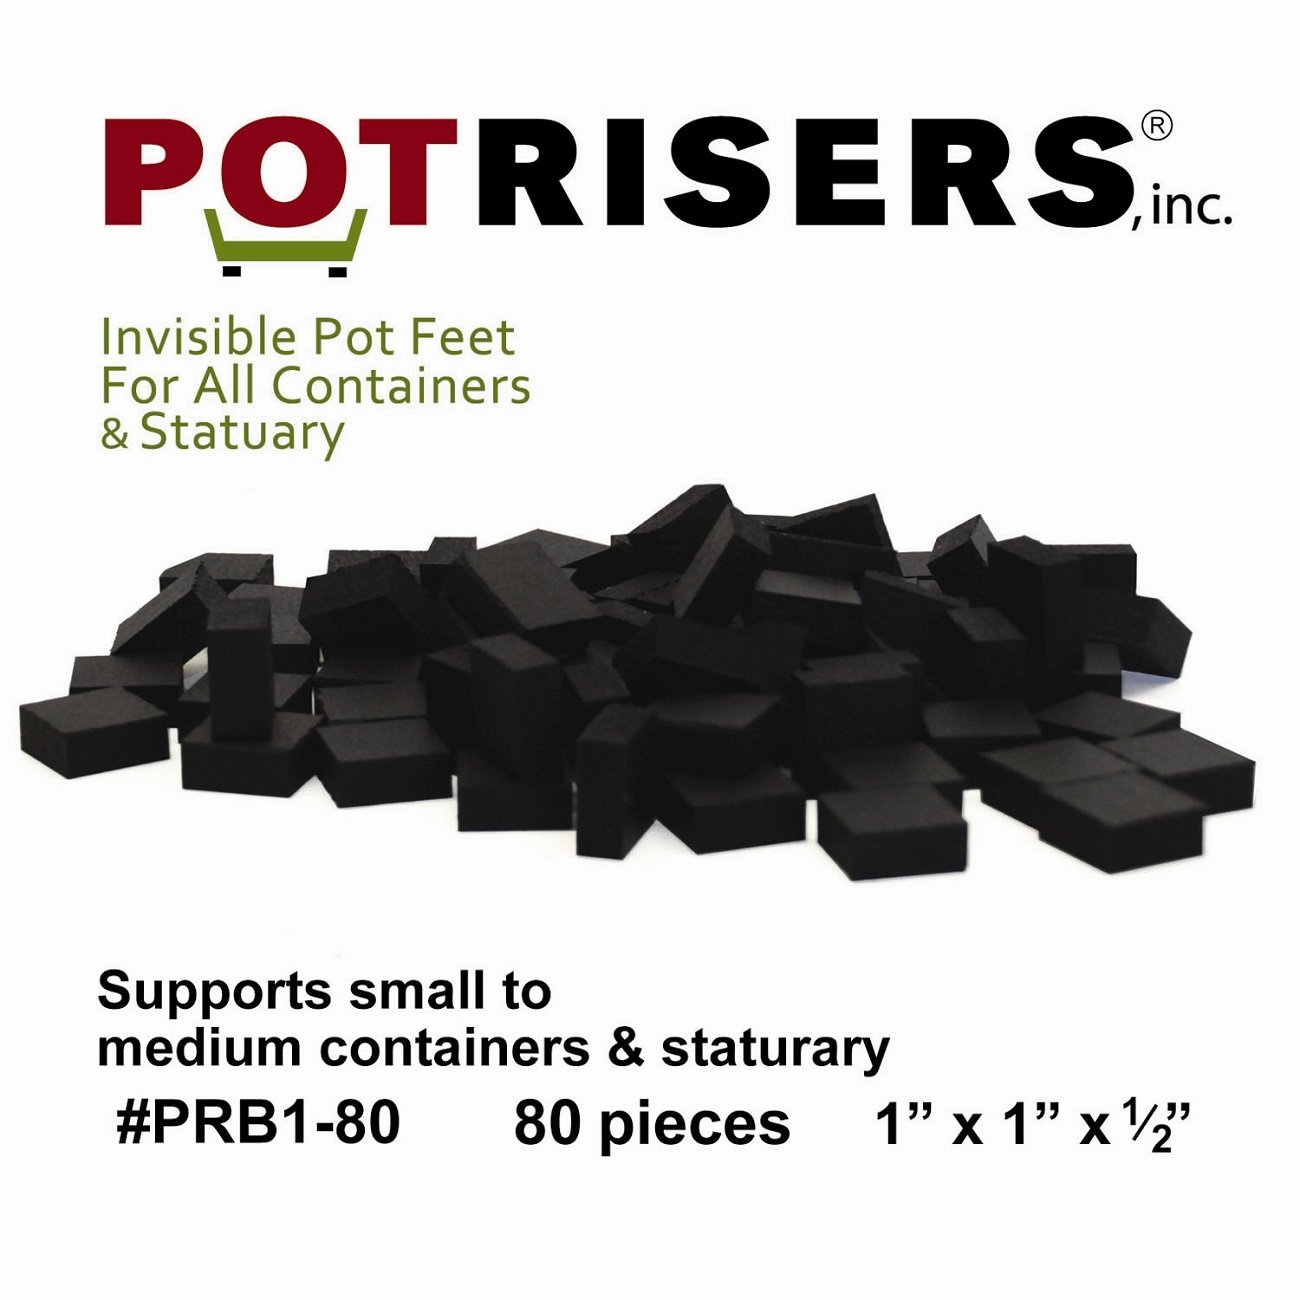 Potrisers (80 Pack) of Standard Risers (supports 20-25 smaller to medium sized pots or statuary)